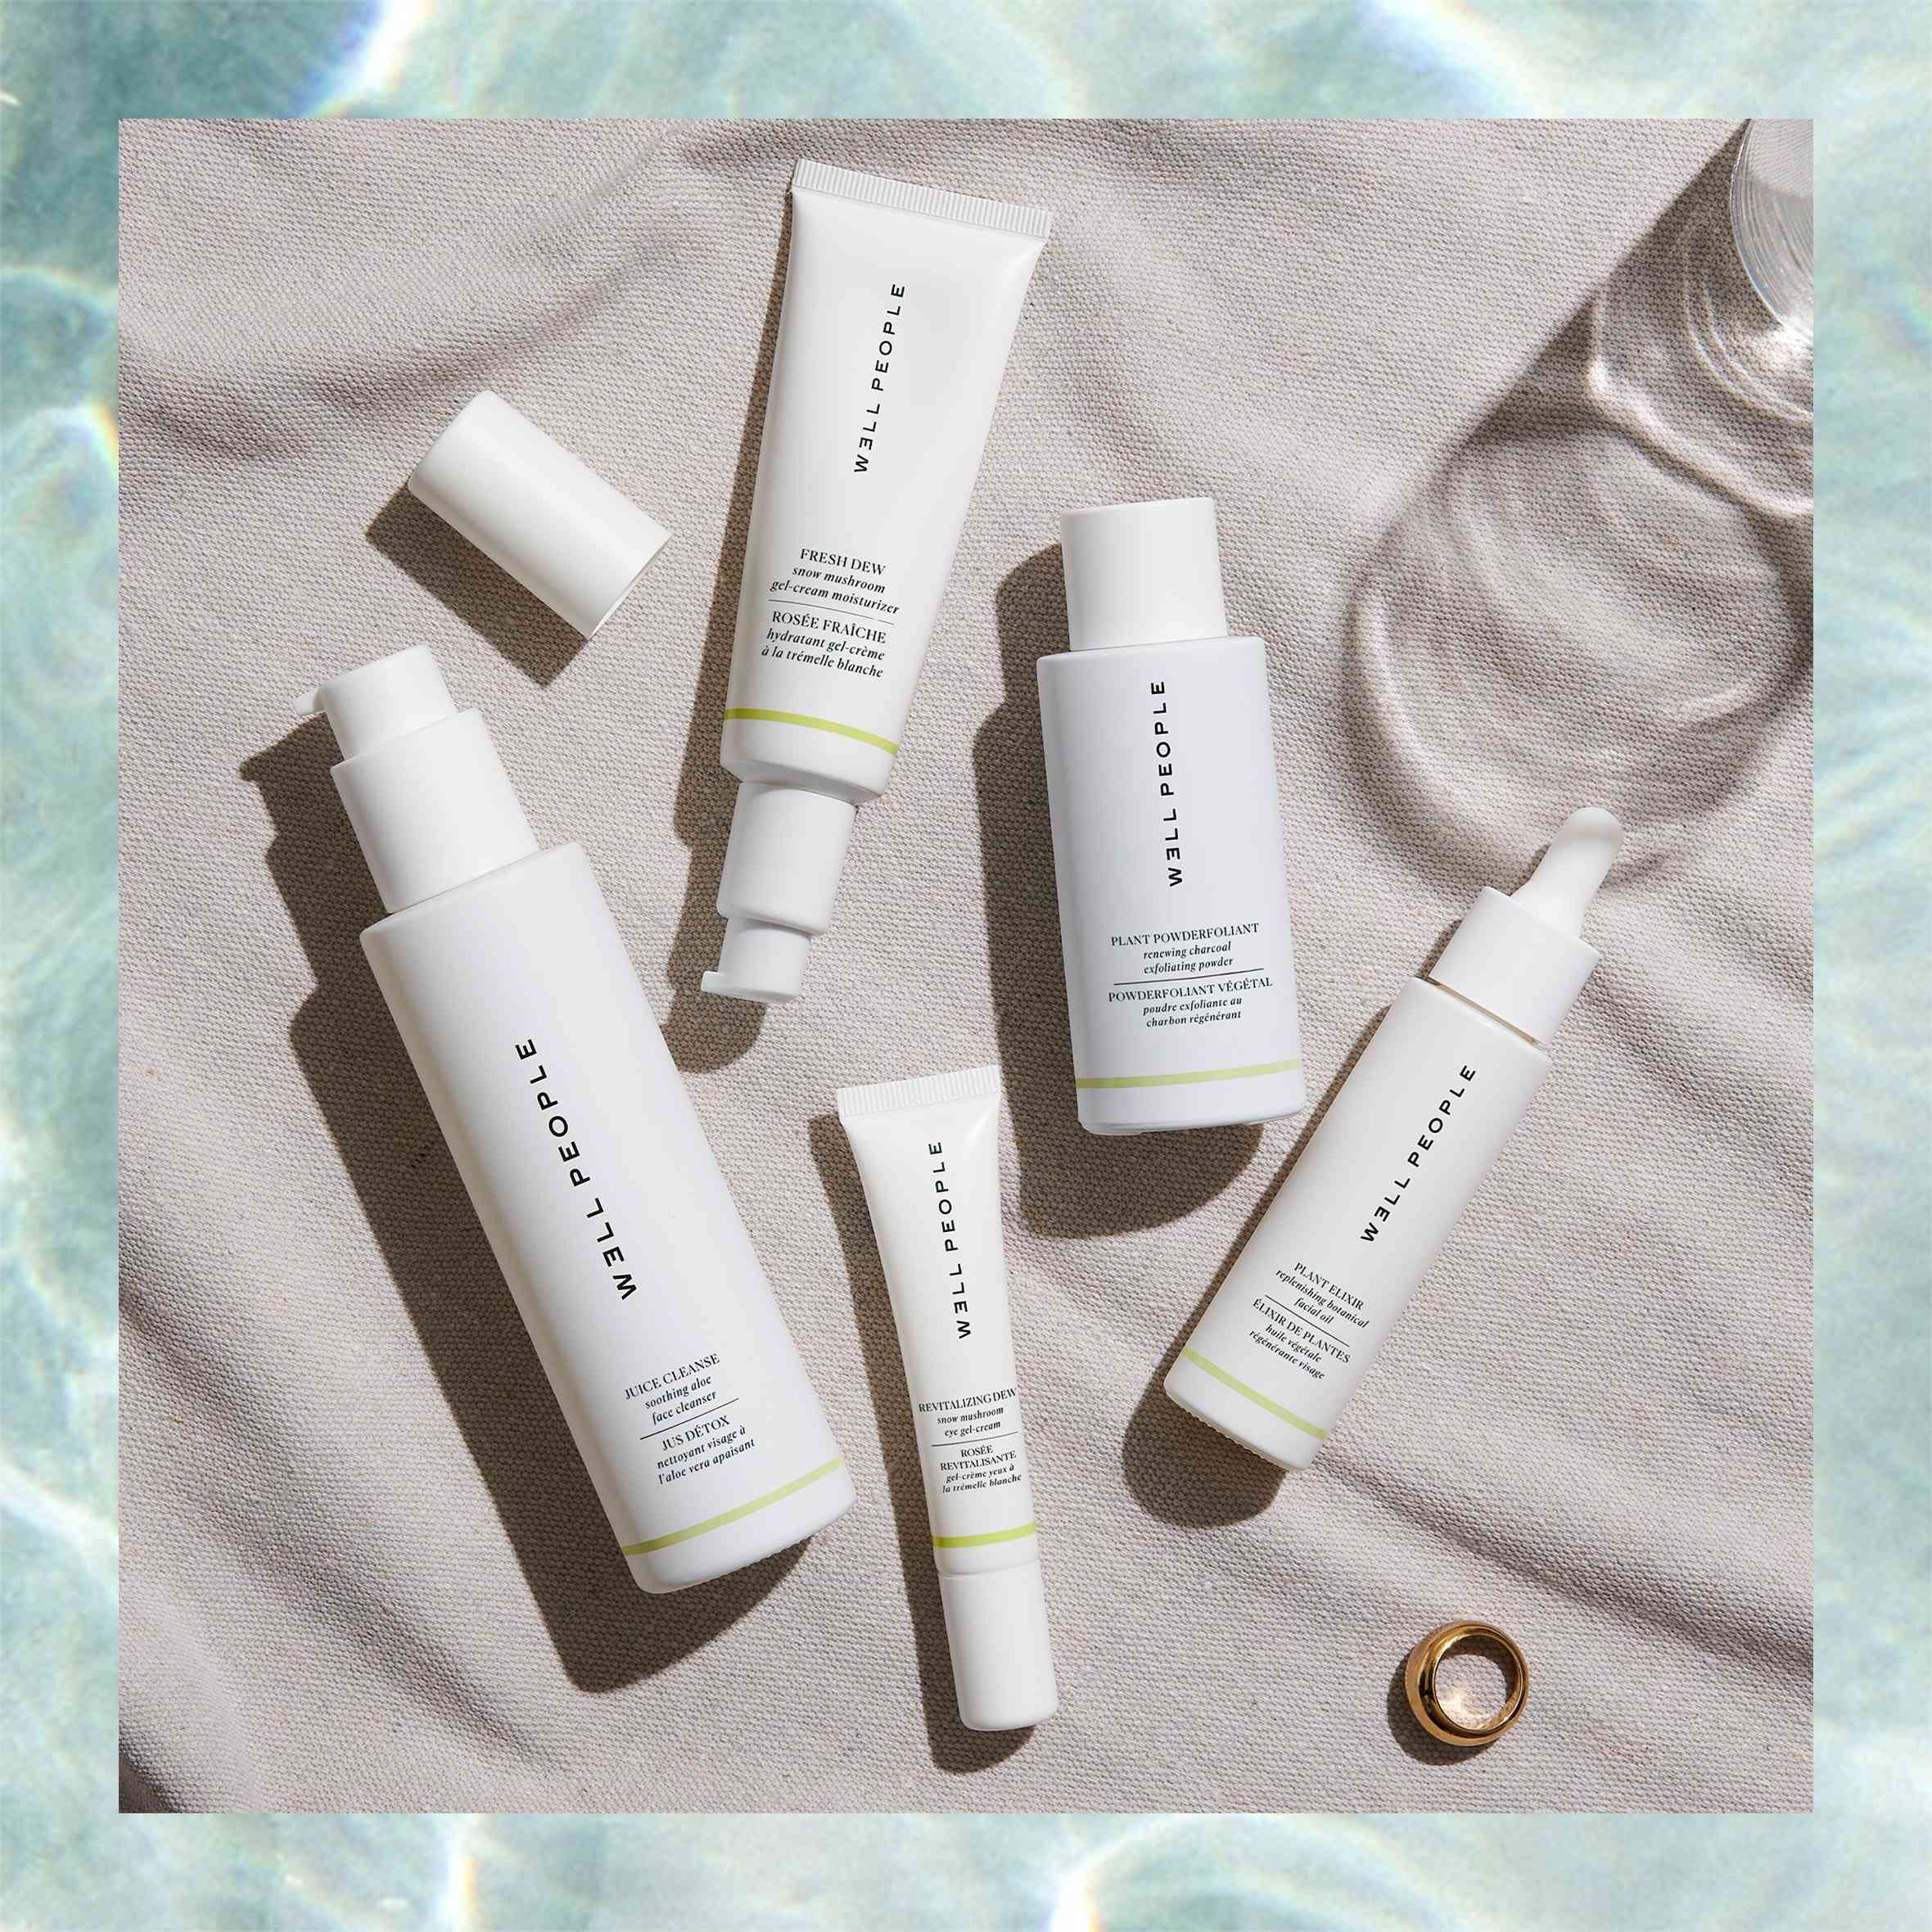 W3LL PEOPLE skincare products